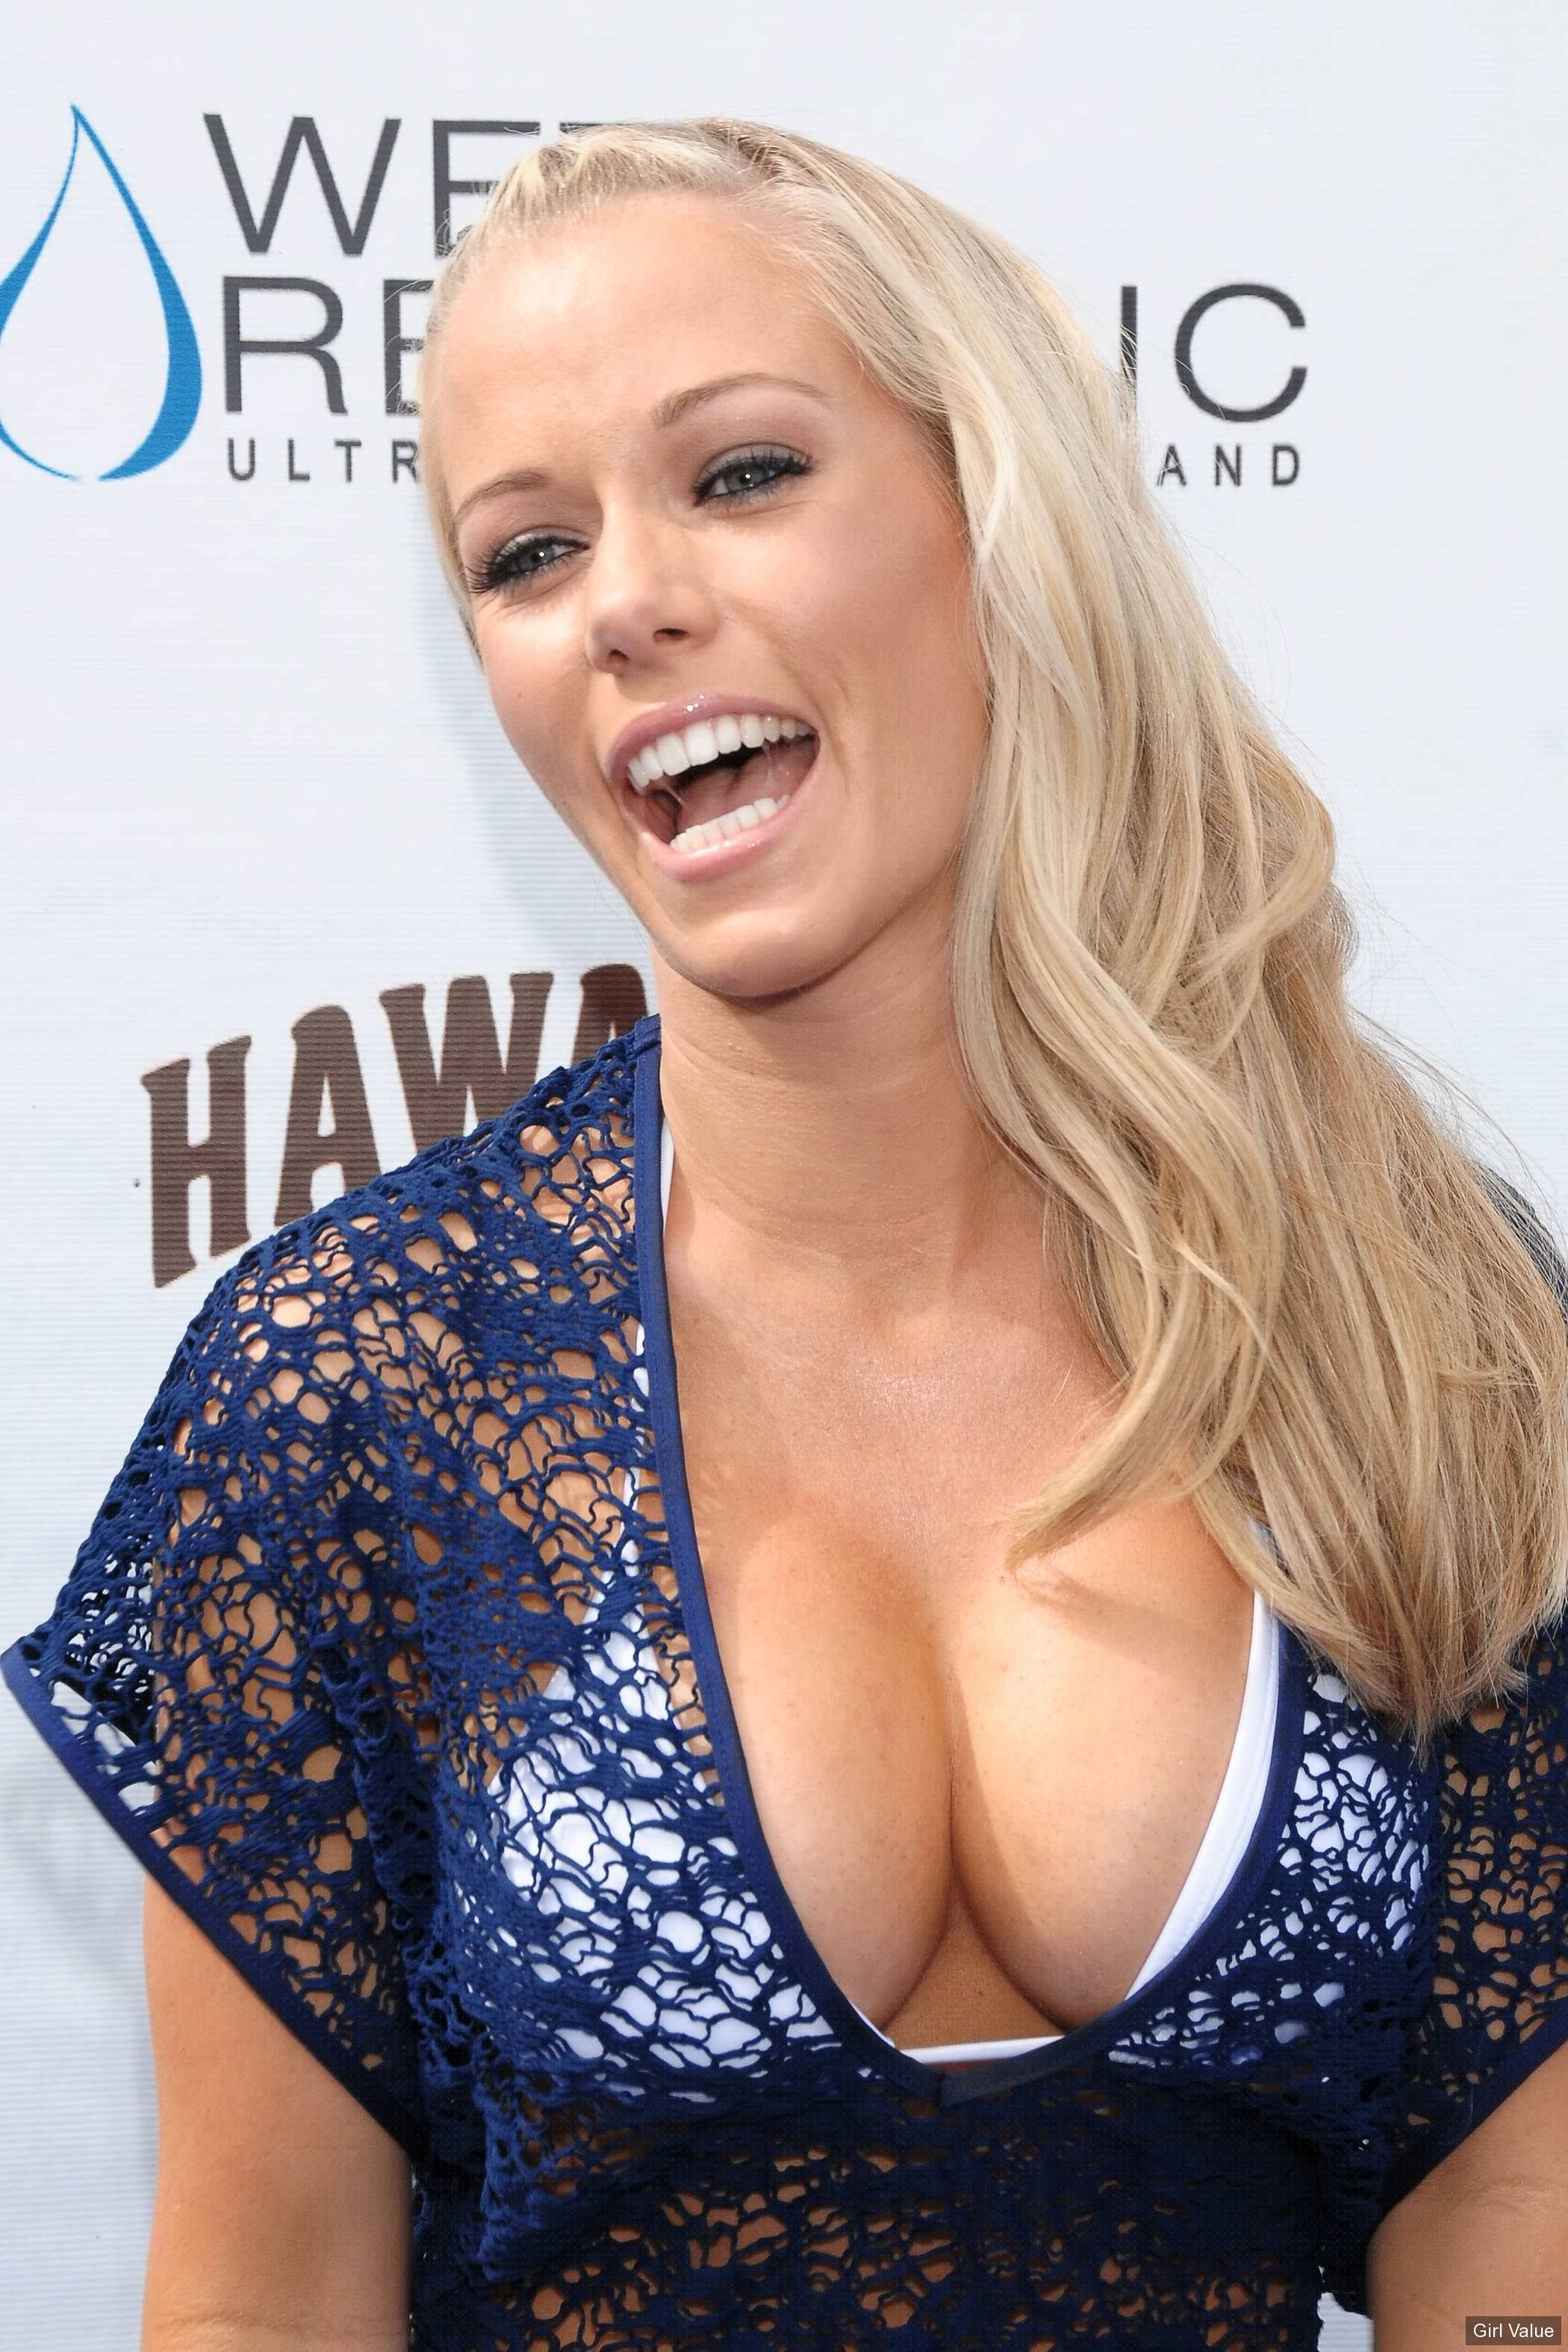 Kendra Wilkinson in loose blue dress with white brazier